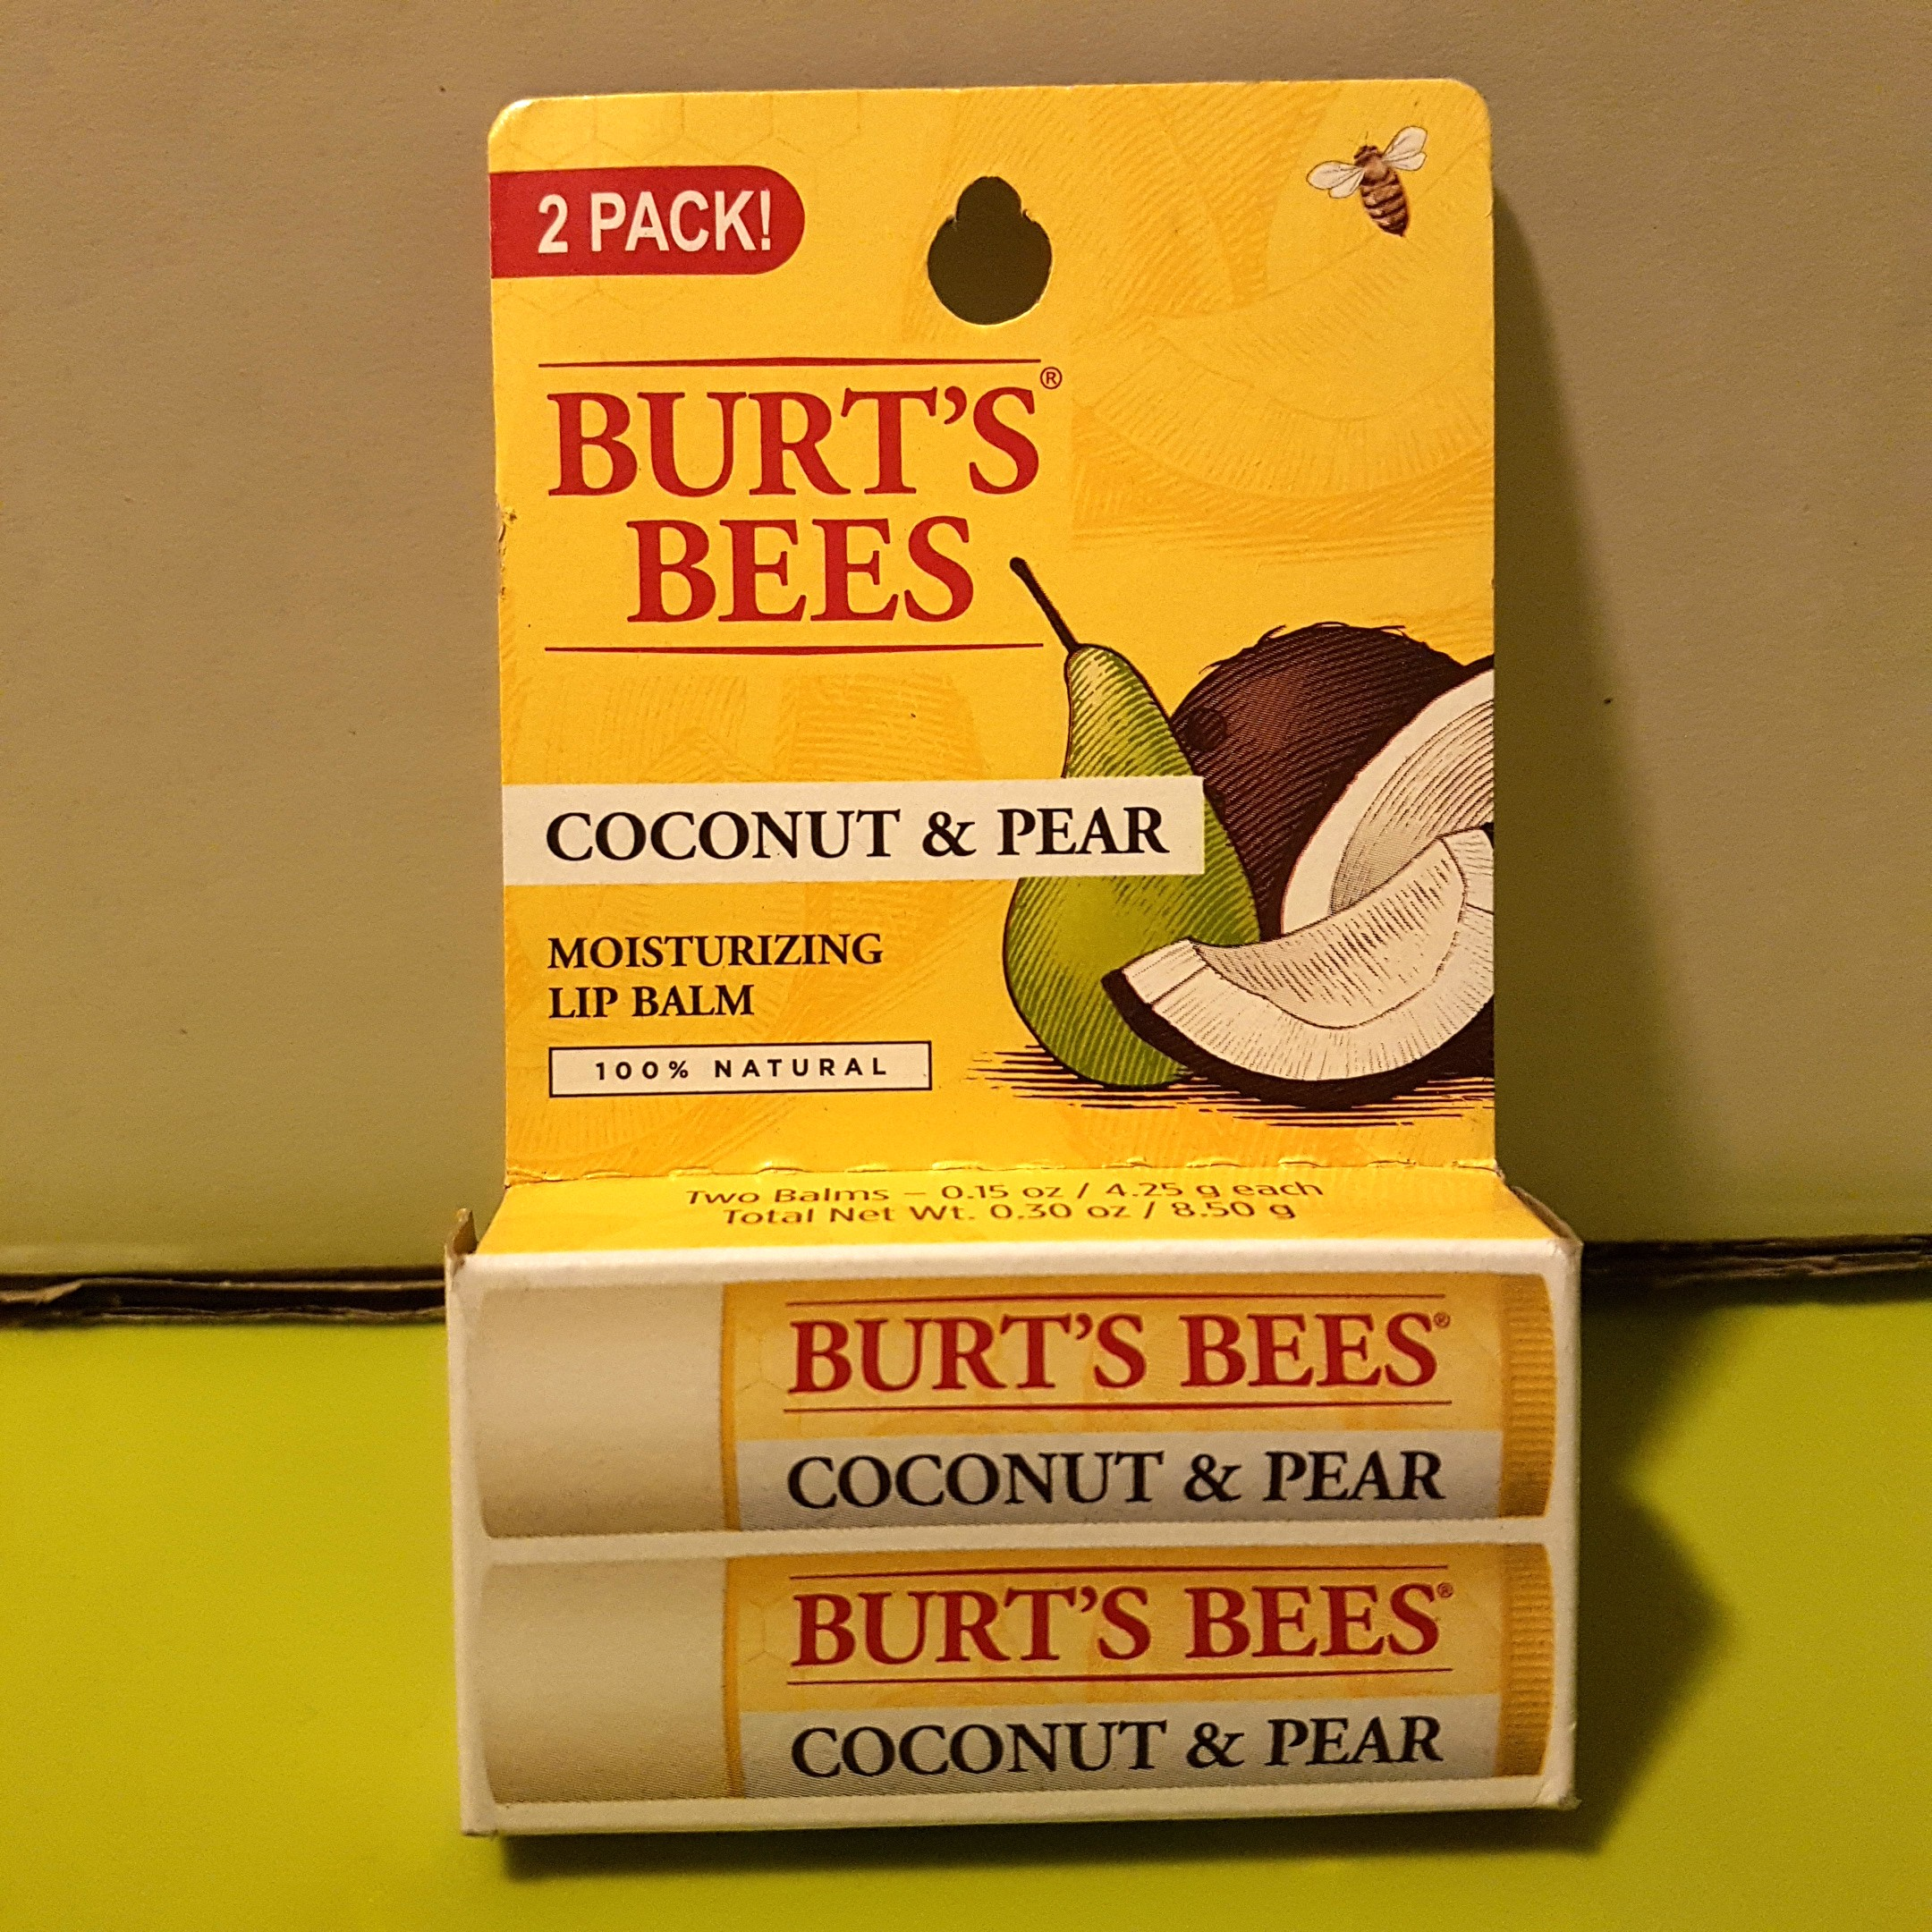 f96769061 Burts Bees Coconut   Pear Moisturizing Lip Balm 100% Natural 2 PACK ...